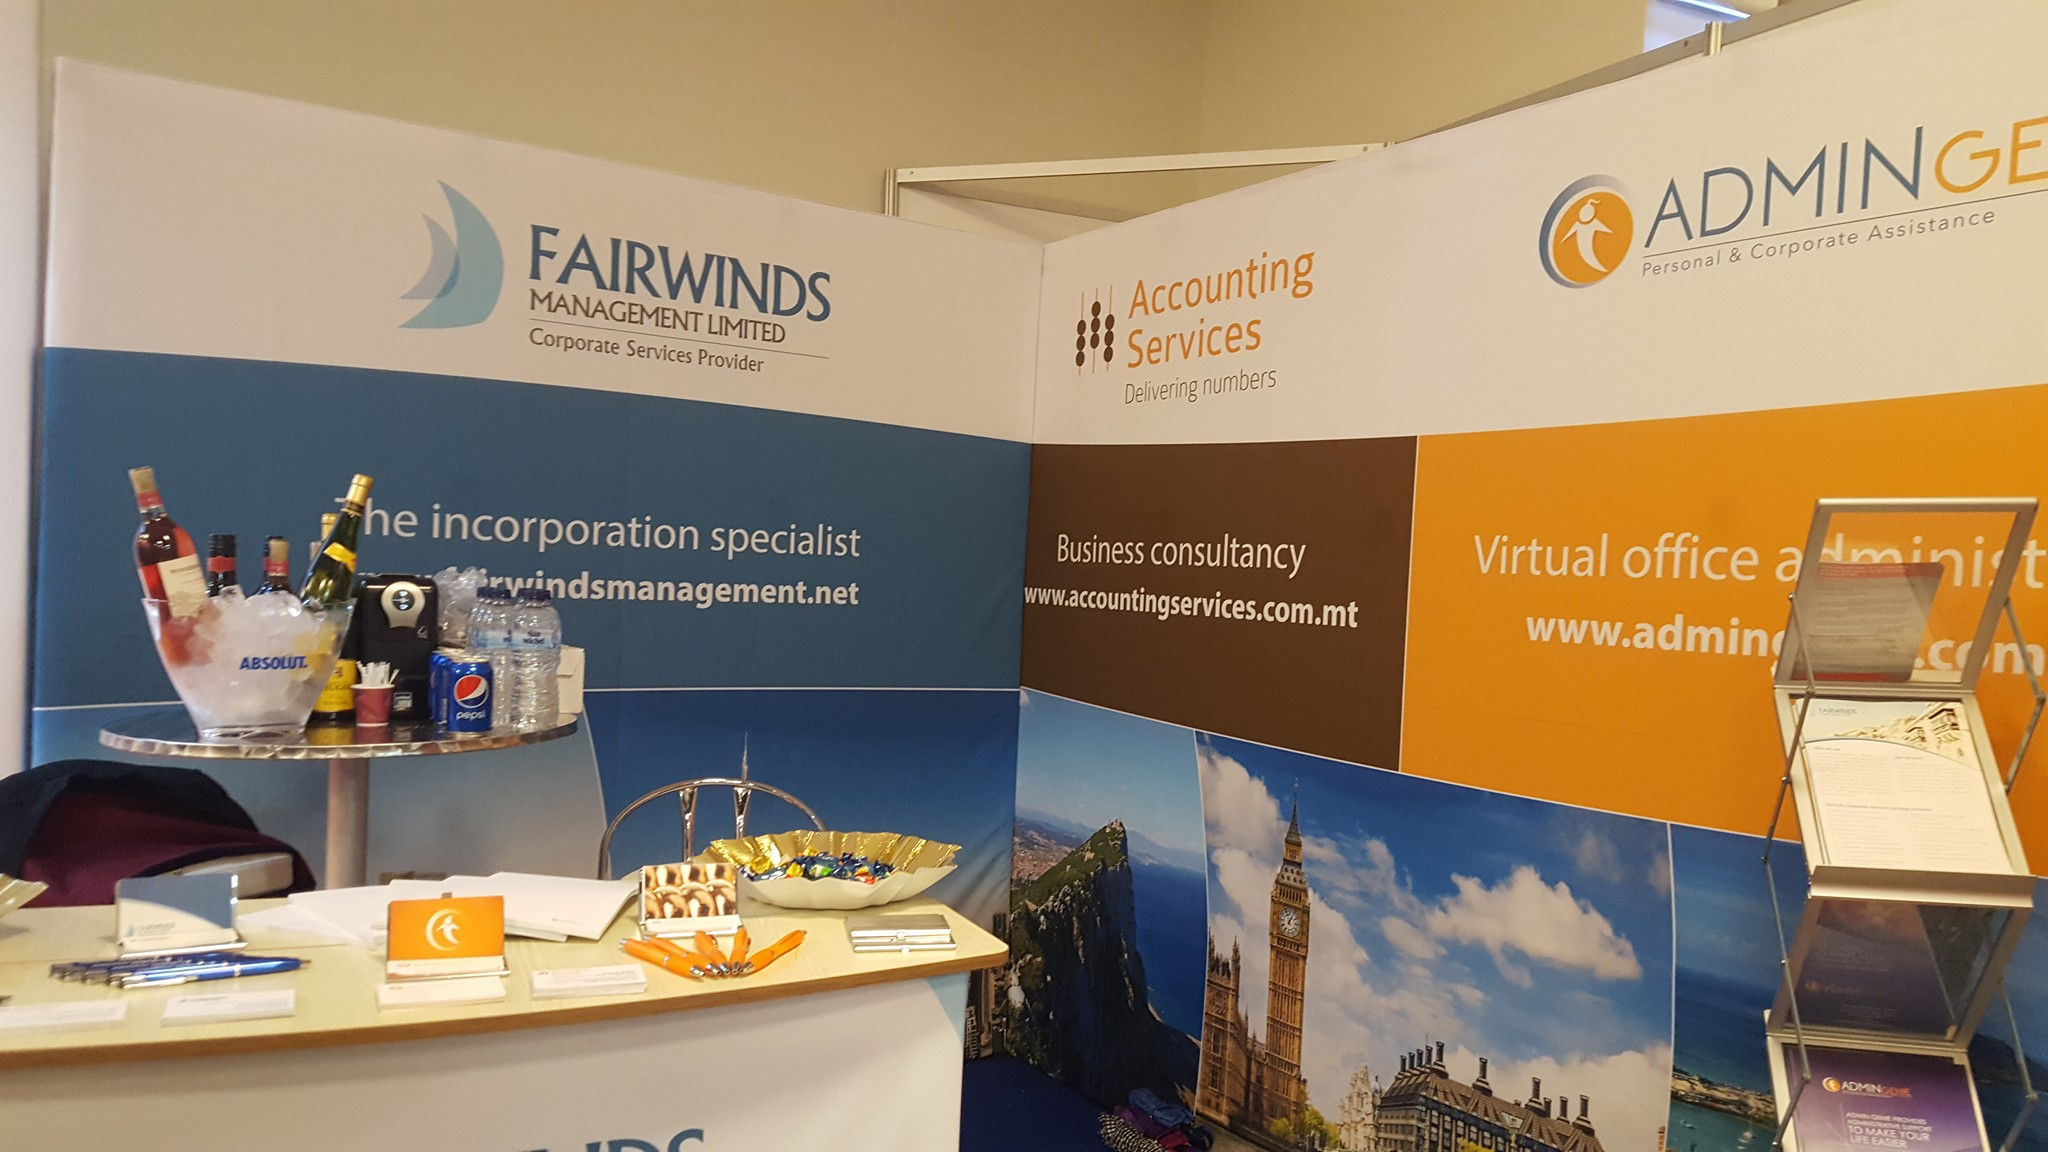 Fairwinds Customer Service >> Igaming Shows Attendance For Fairwinds Management